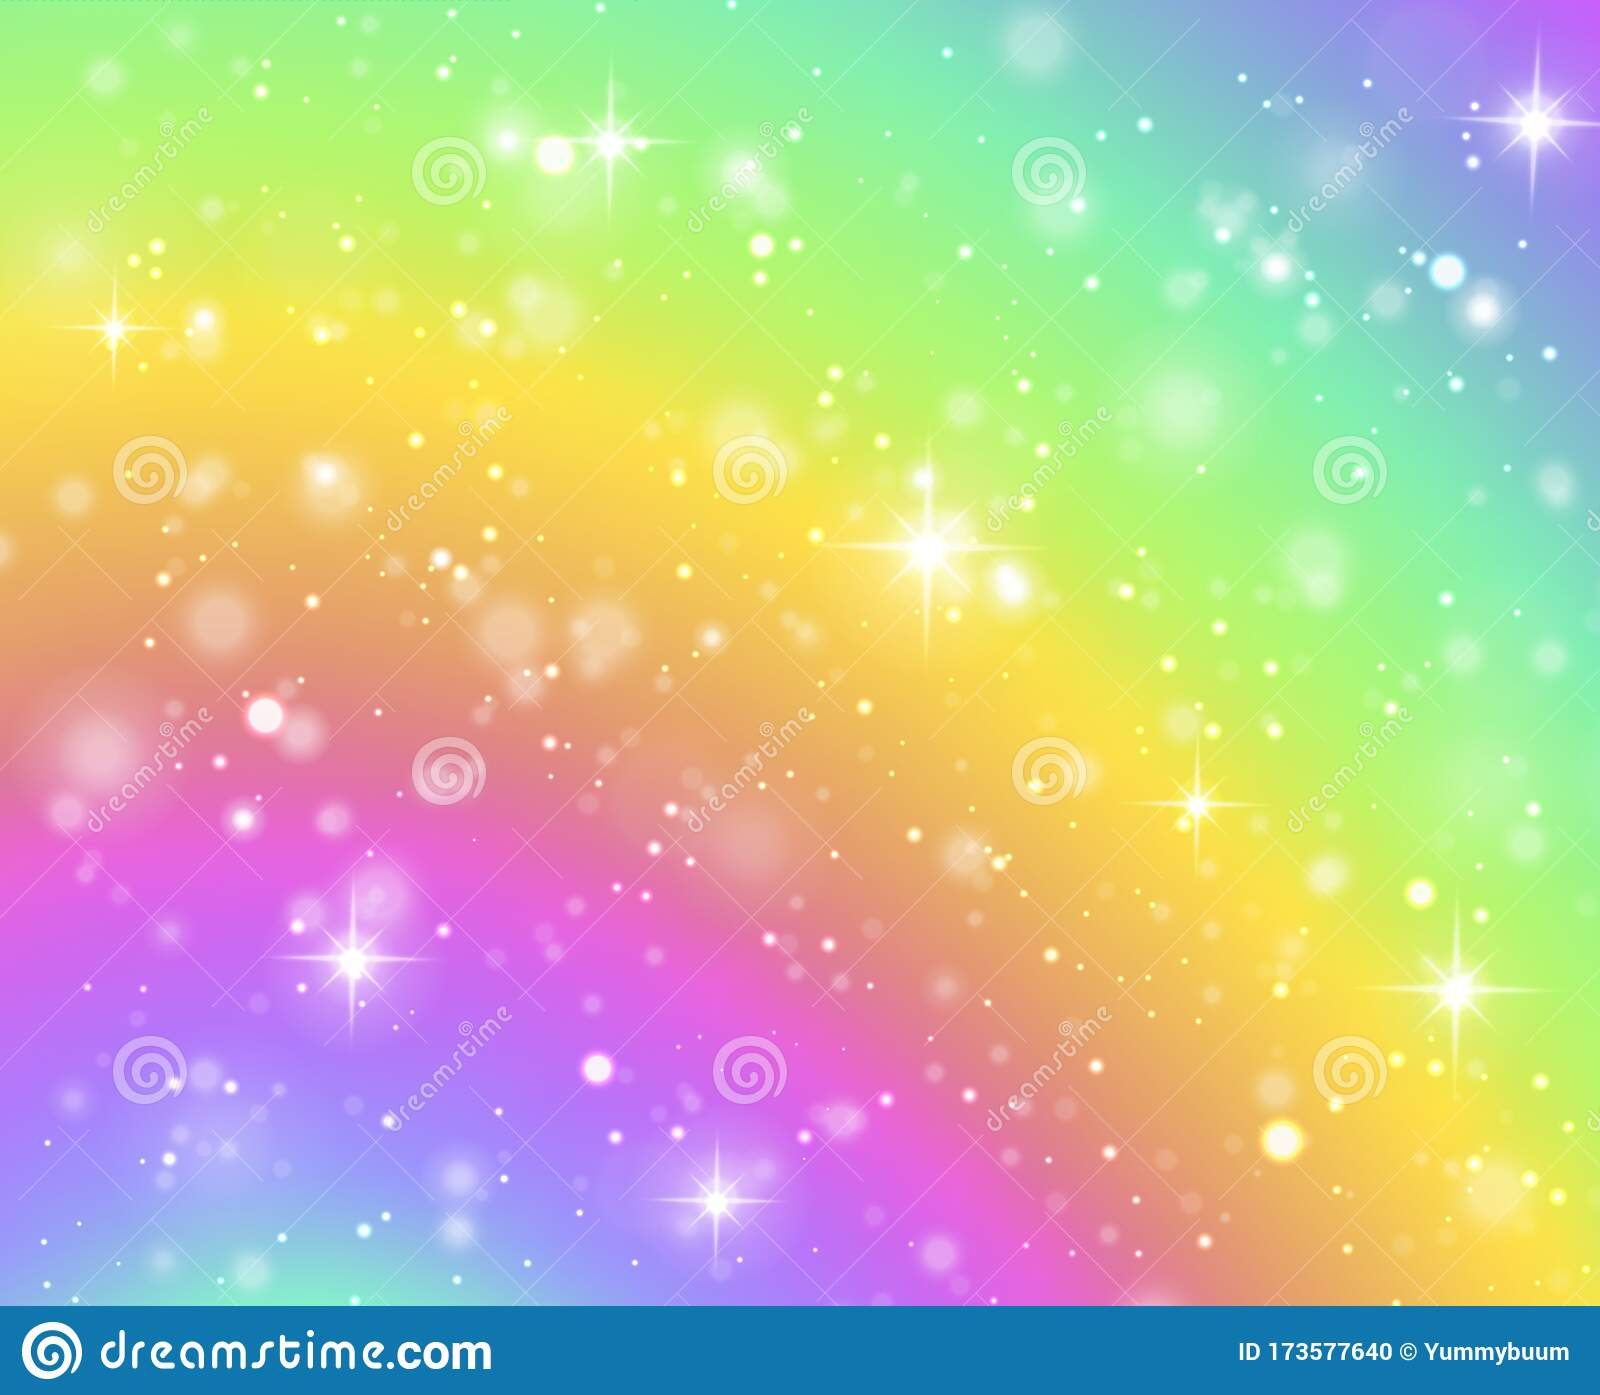 Rainbow Background Fantasy Unicorn Galaxy Fairy Stars In Pastel Sky And Bokeh Iridescent Hologram Texture With Stock Vector Illustration Of Bright Gradient 173577640